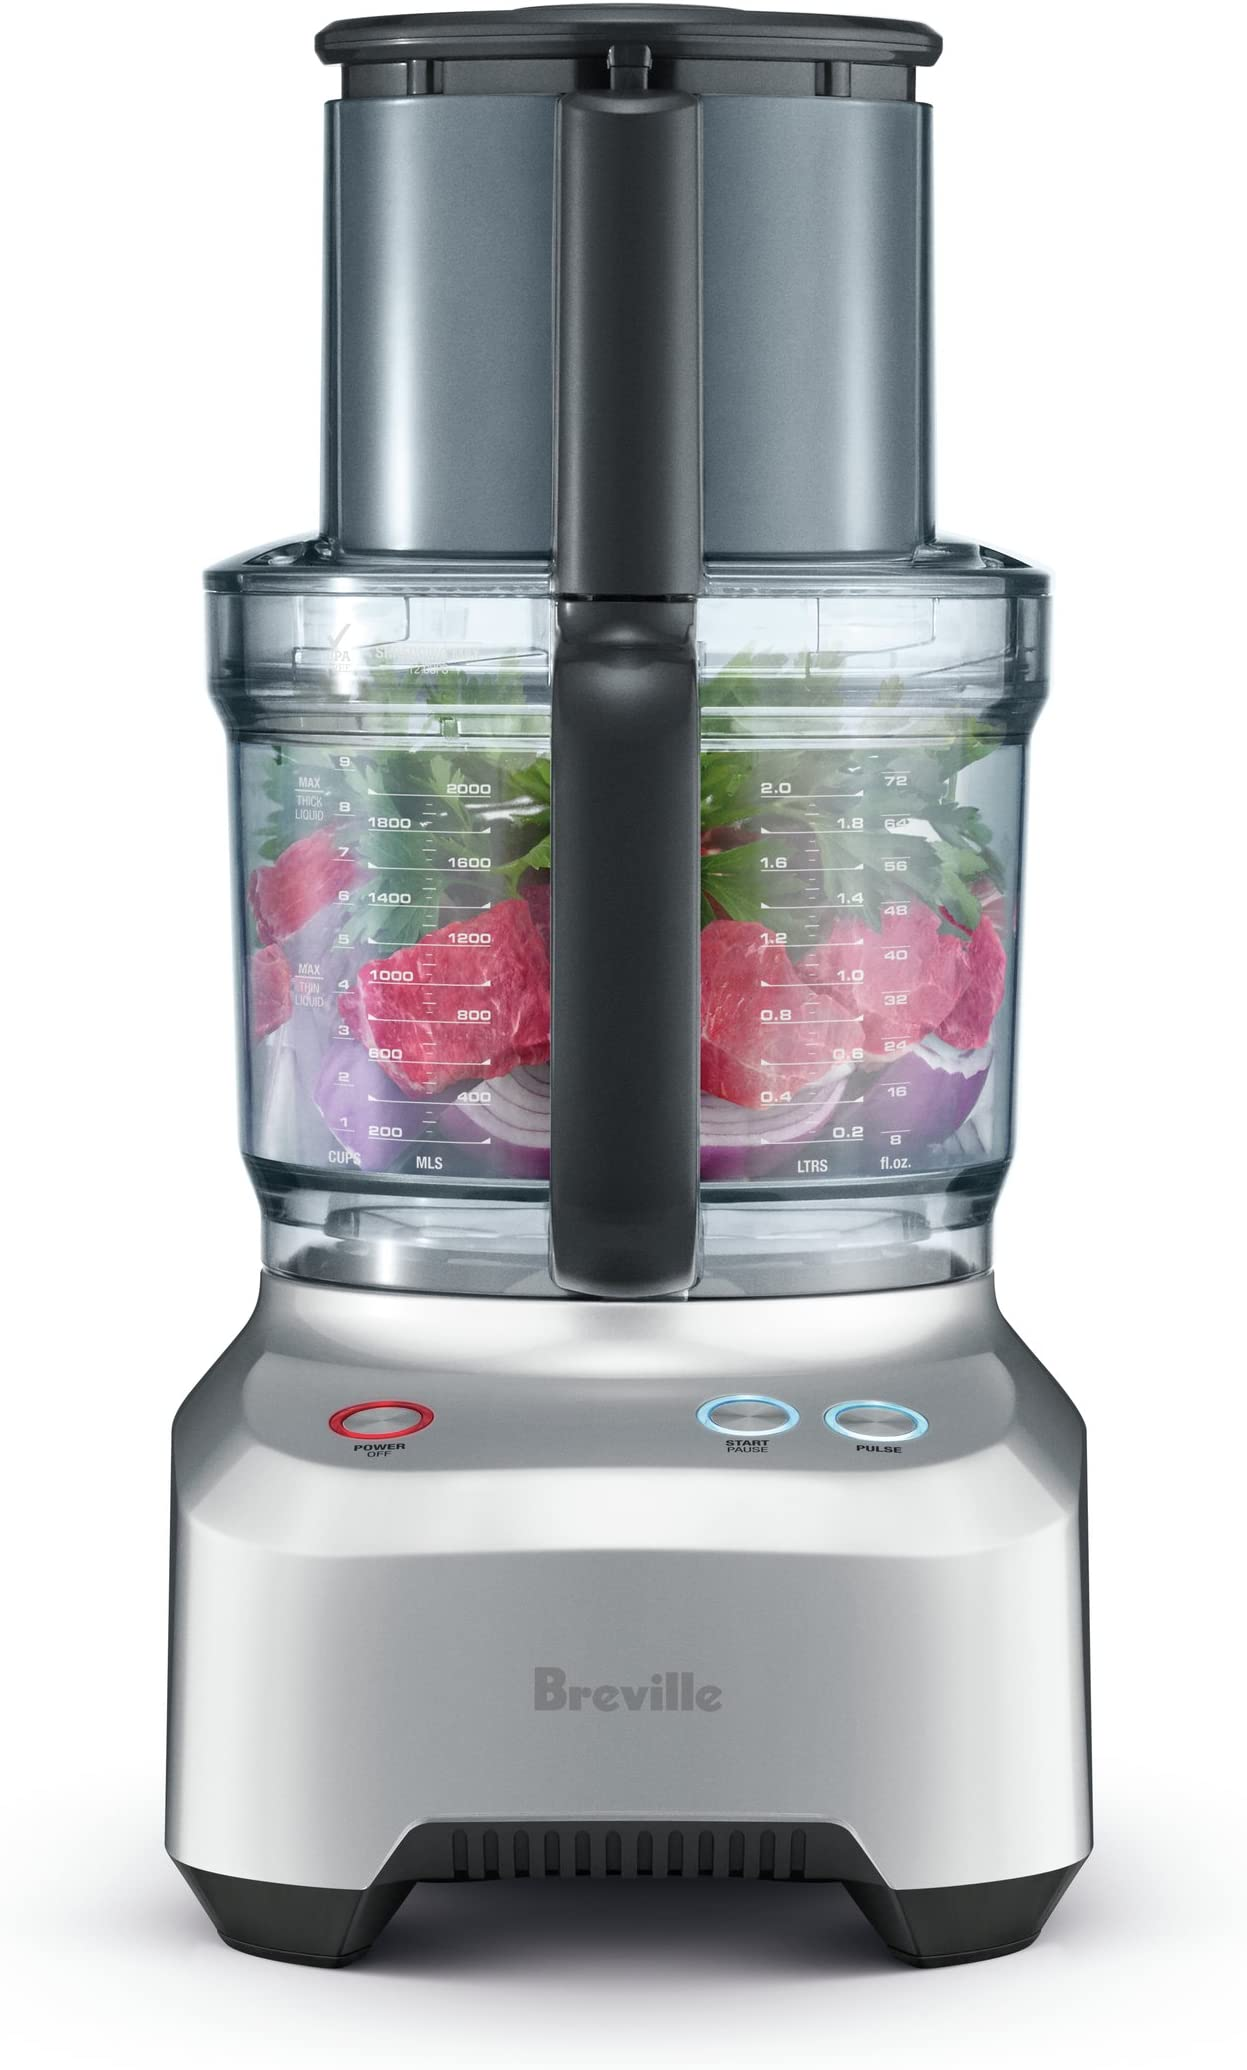 Breville BFP660SIL Sous Chef 12 Cup Food Processor, Silver